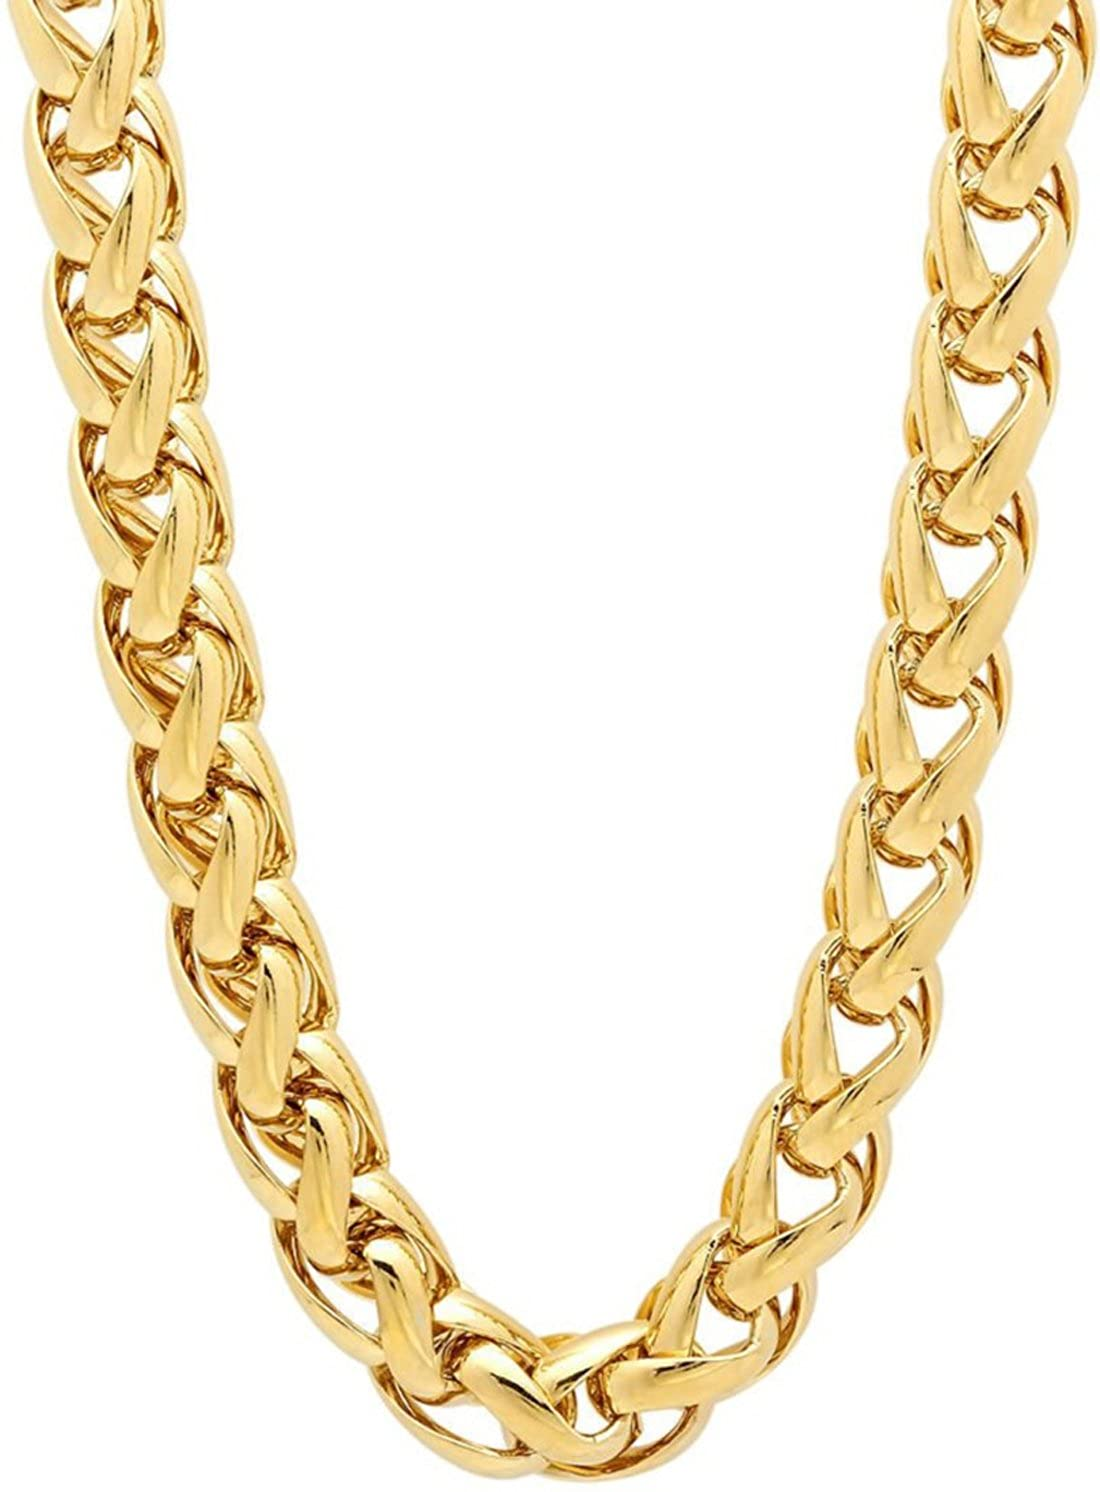 2e8e79f5d1dd0 Spangel Fashion Gold Plated Chain for Boys and Mens